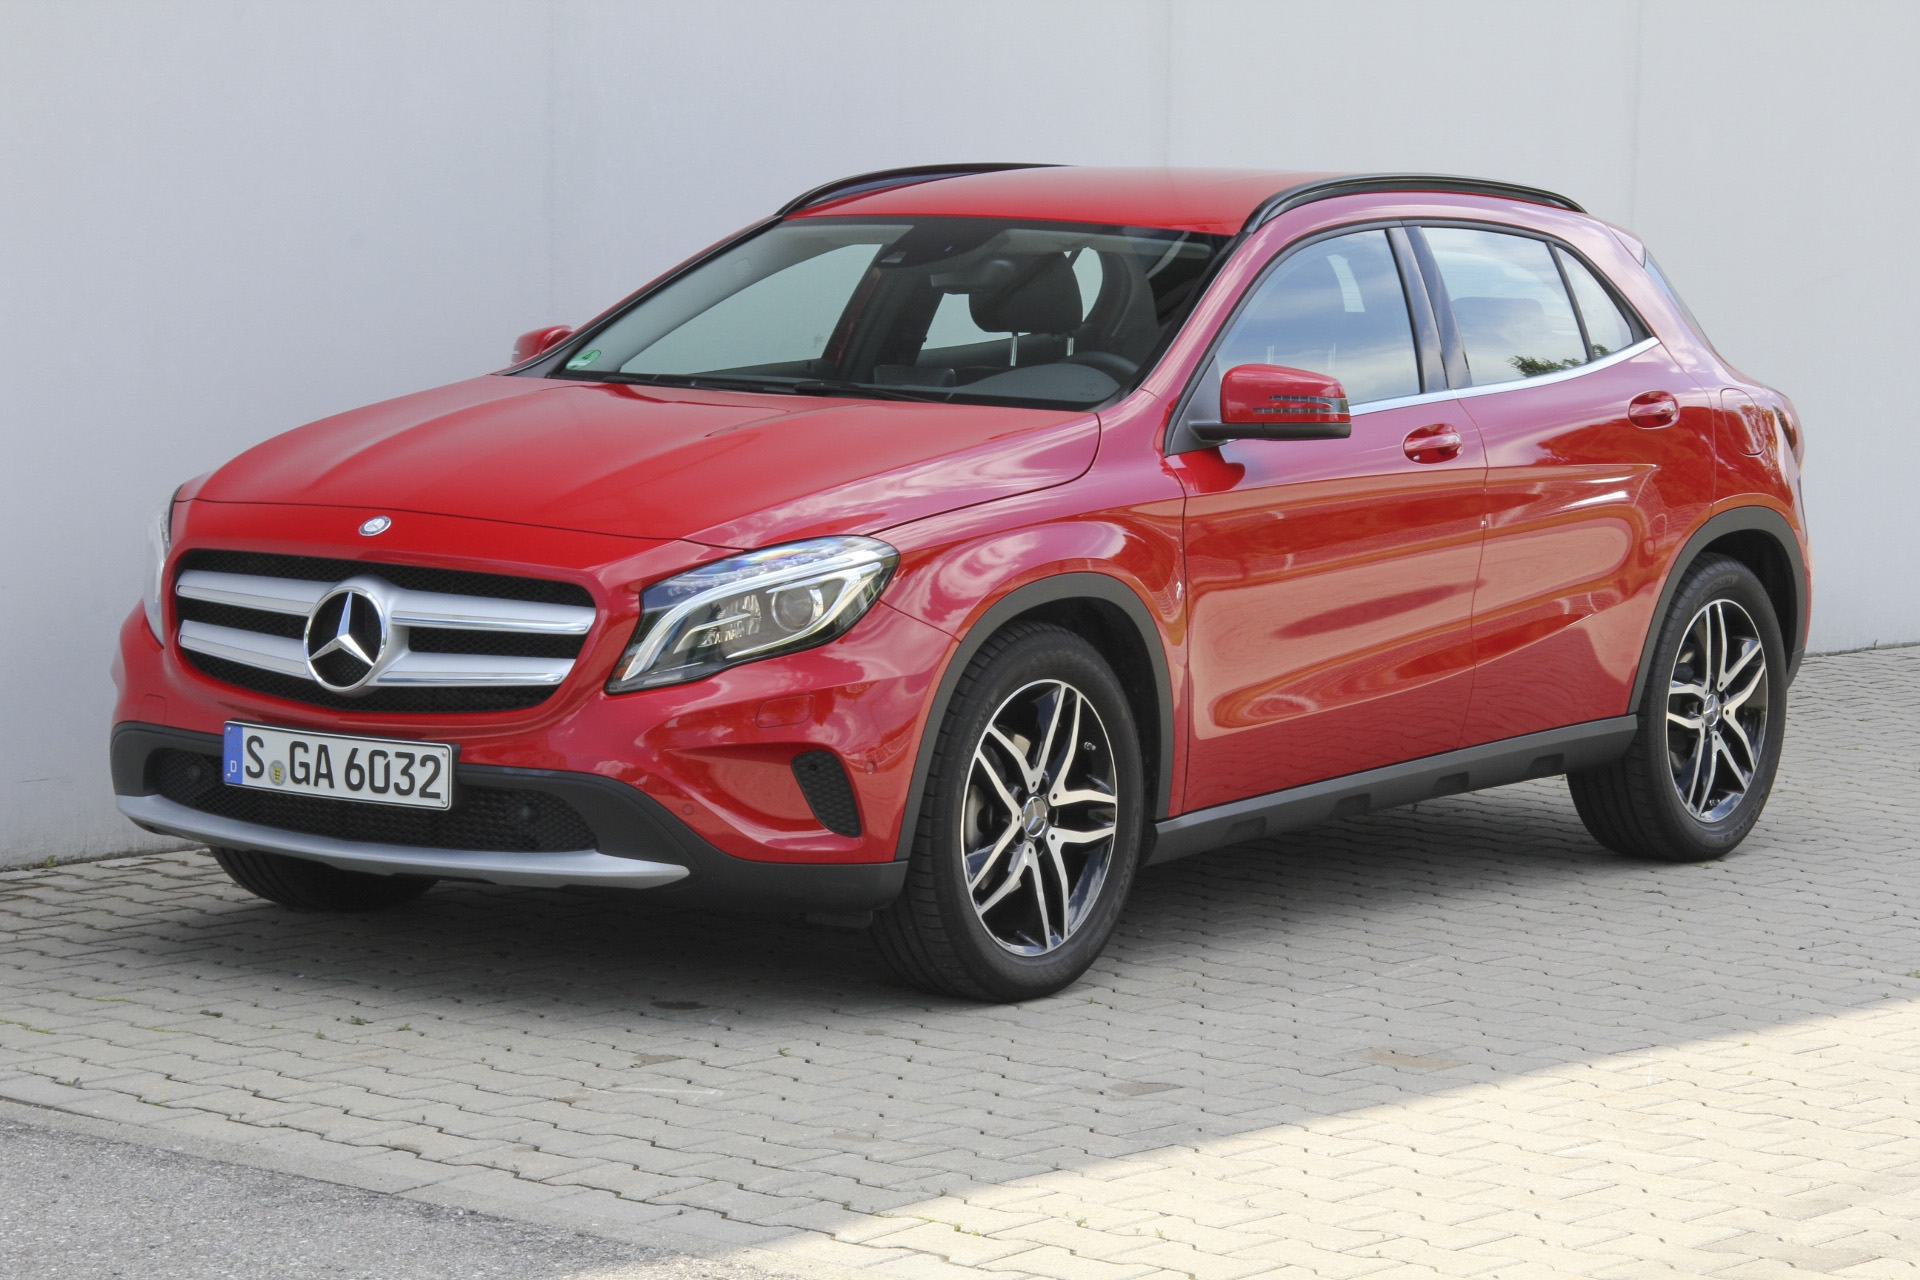 mercedes gla 200 test prijzen en specificaties. Black Bedroom Furniture Sets. Home Design Ideas